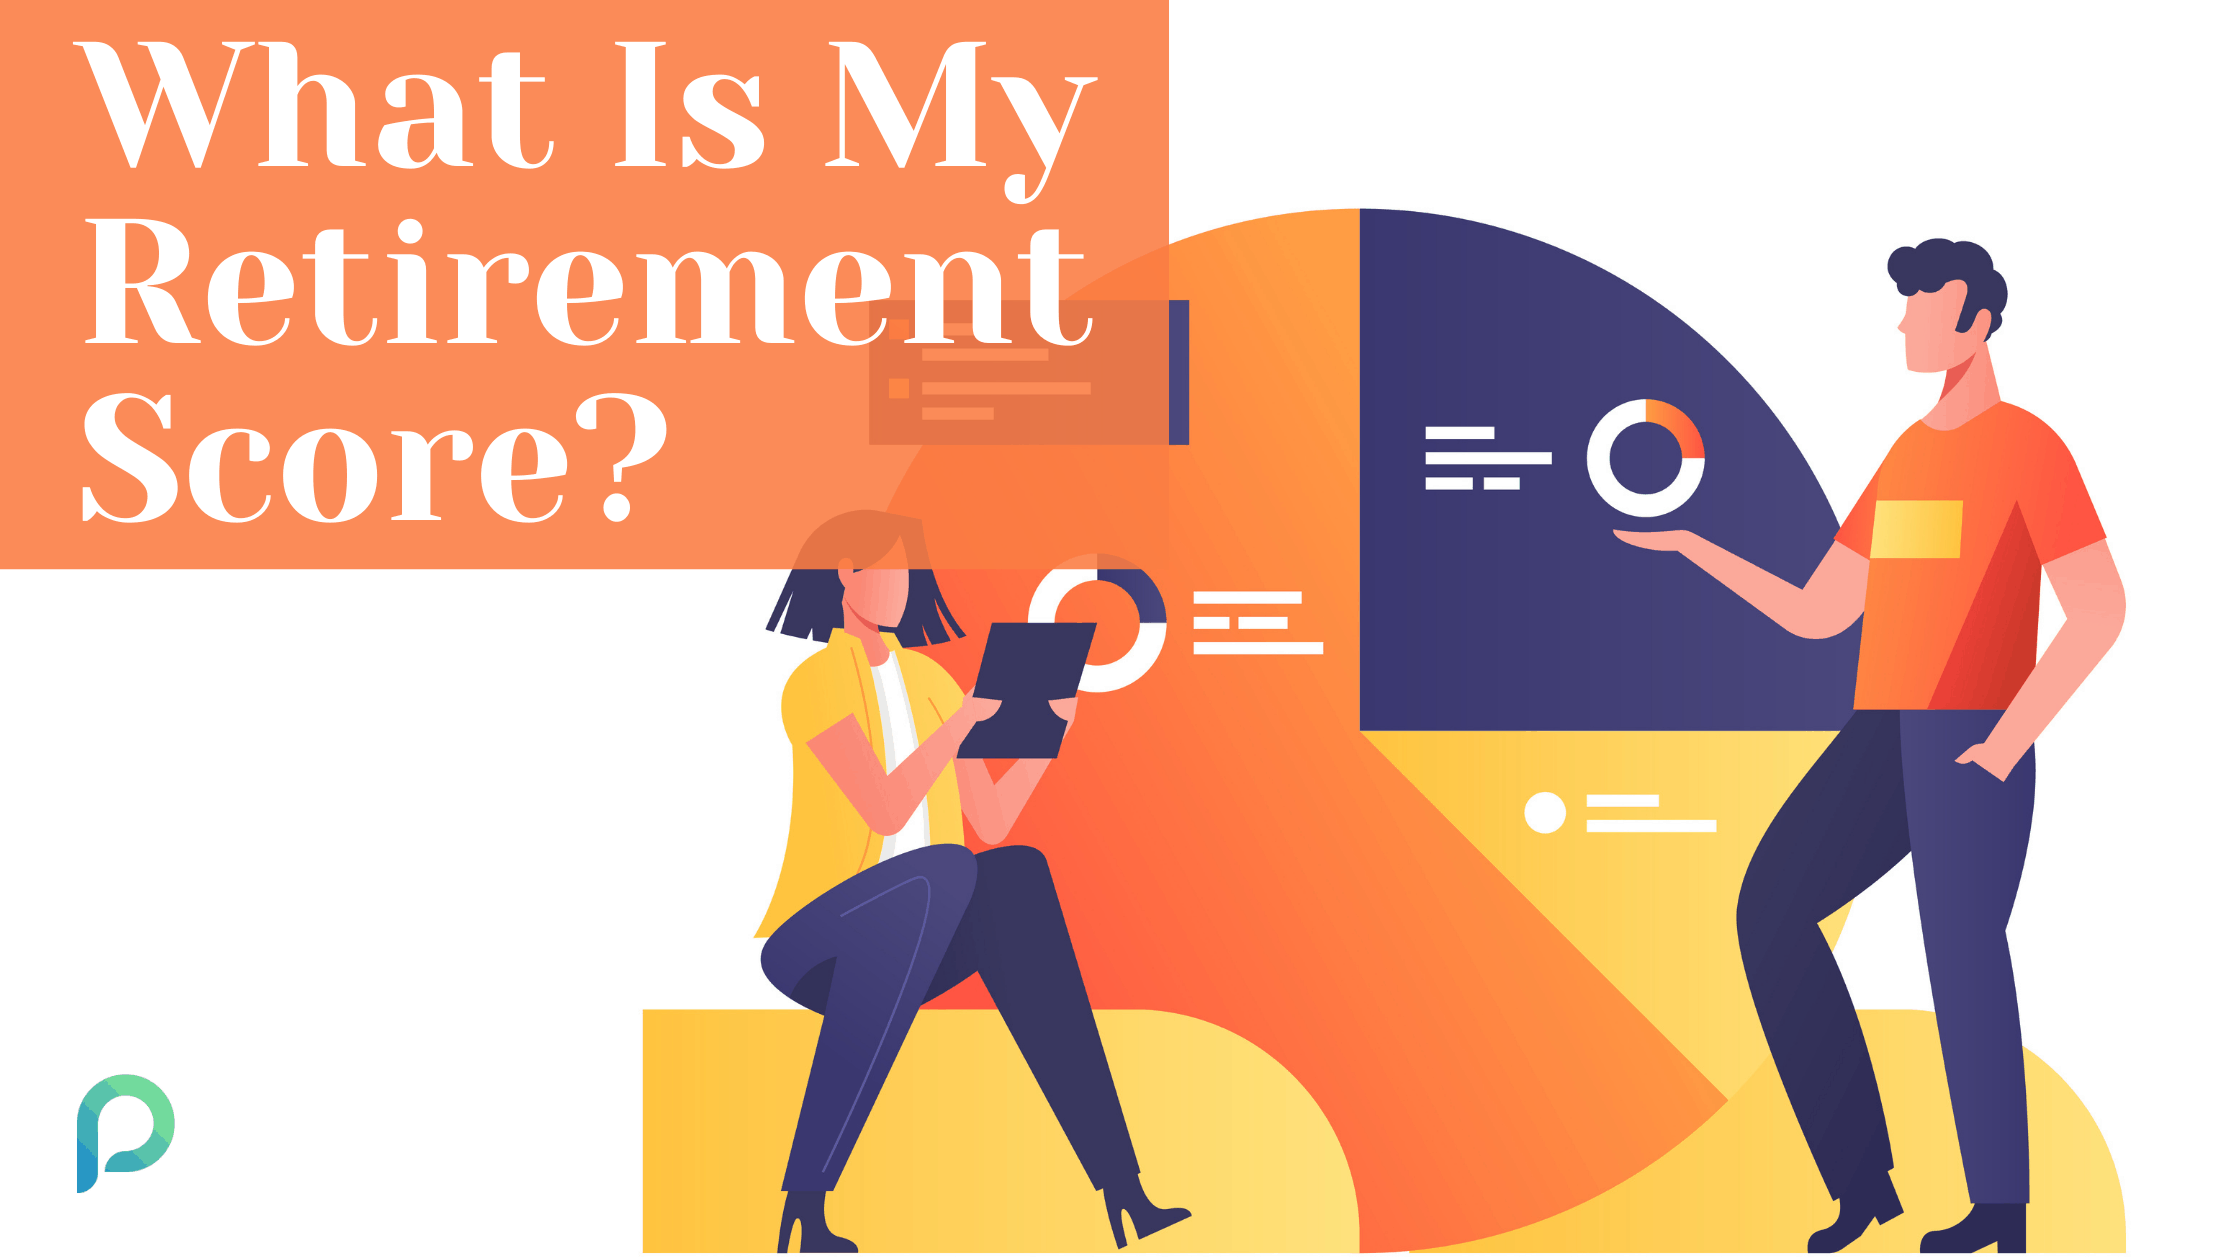 What is My Retirement Score?